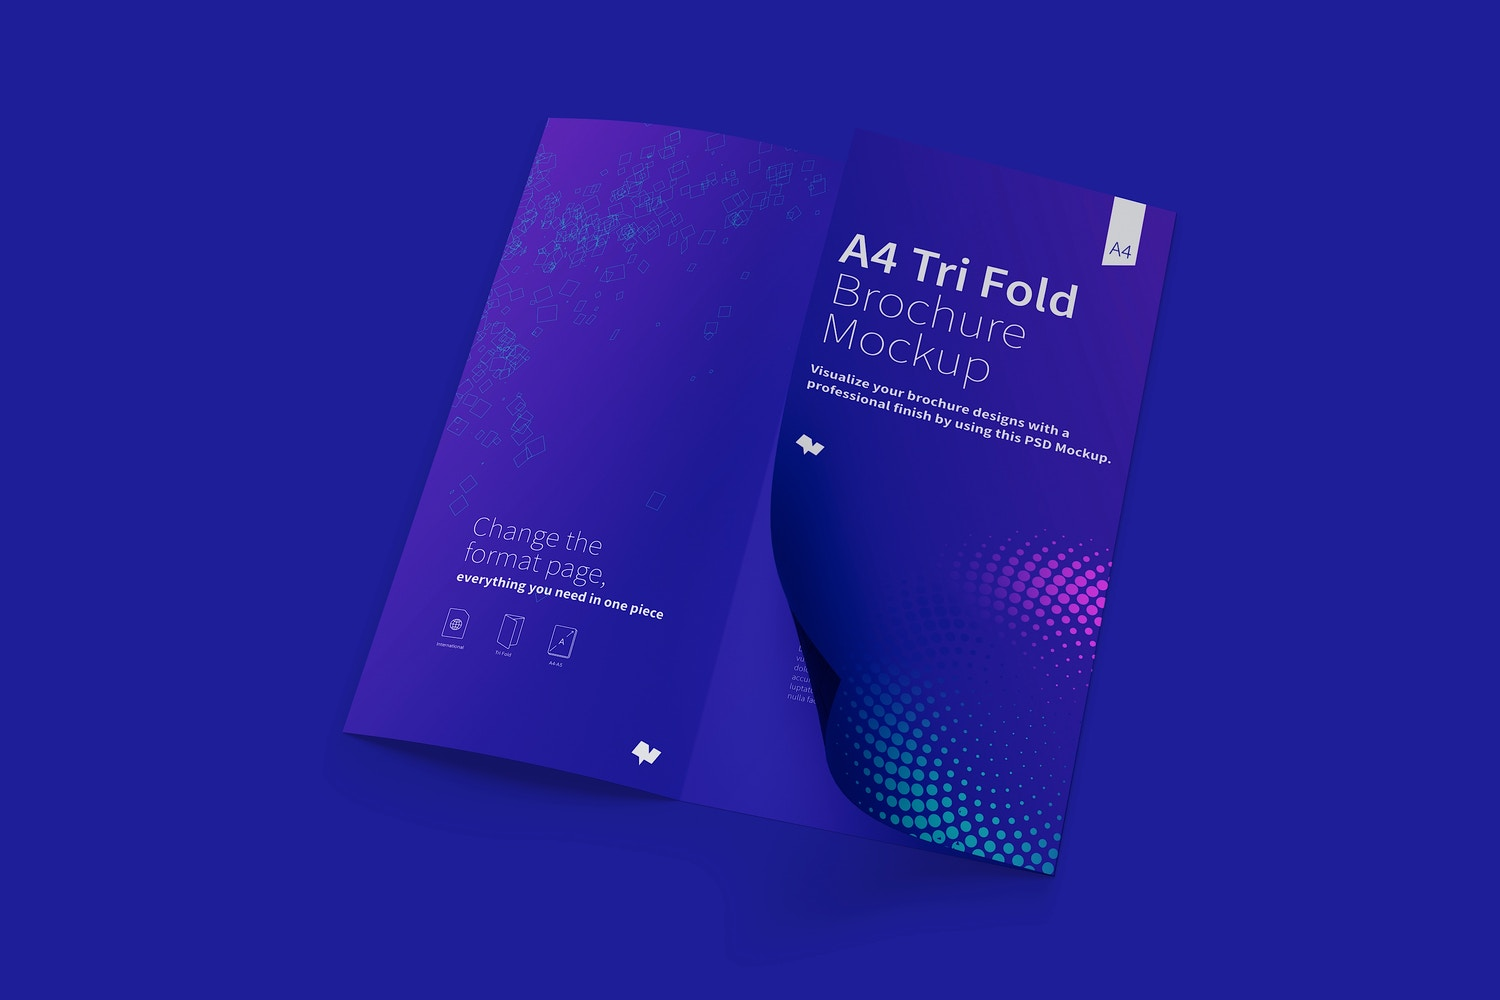 A4 Trifold Brochure Mockup 04 (4) by Original Mockups on Original Mockups